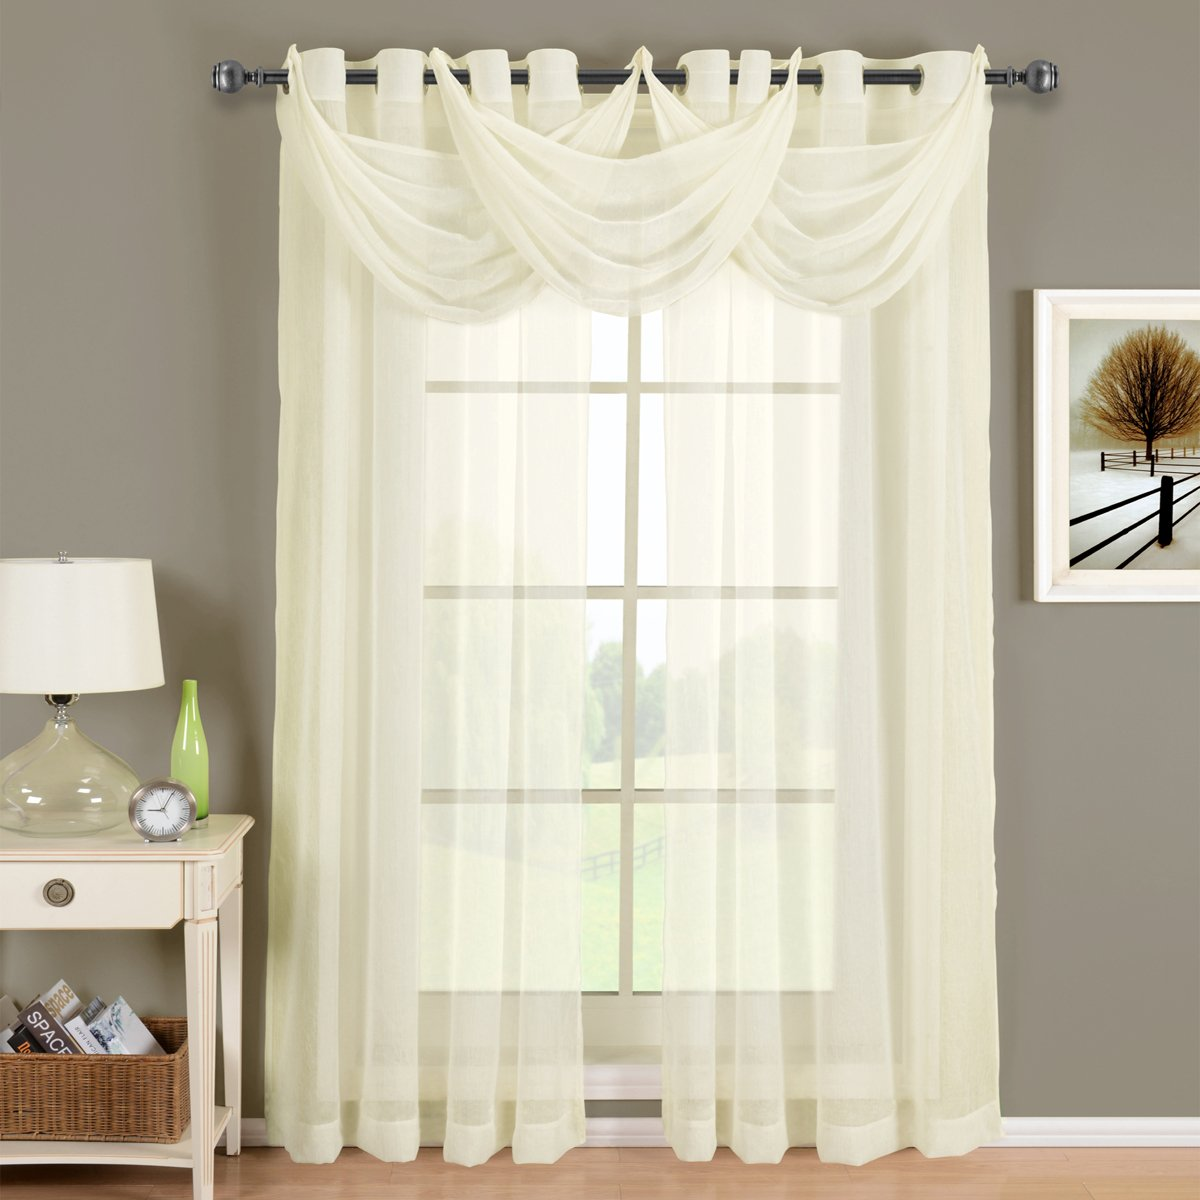 Luxury Abri Ivory Grommet Crushed Sheer Curtain, 50x84 inches, by Royal Hotel